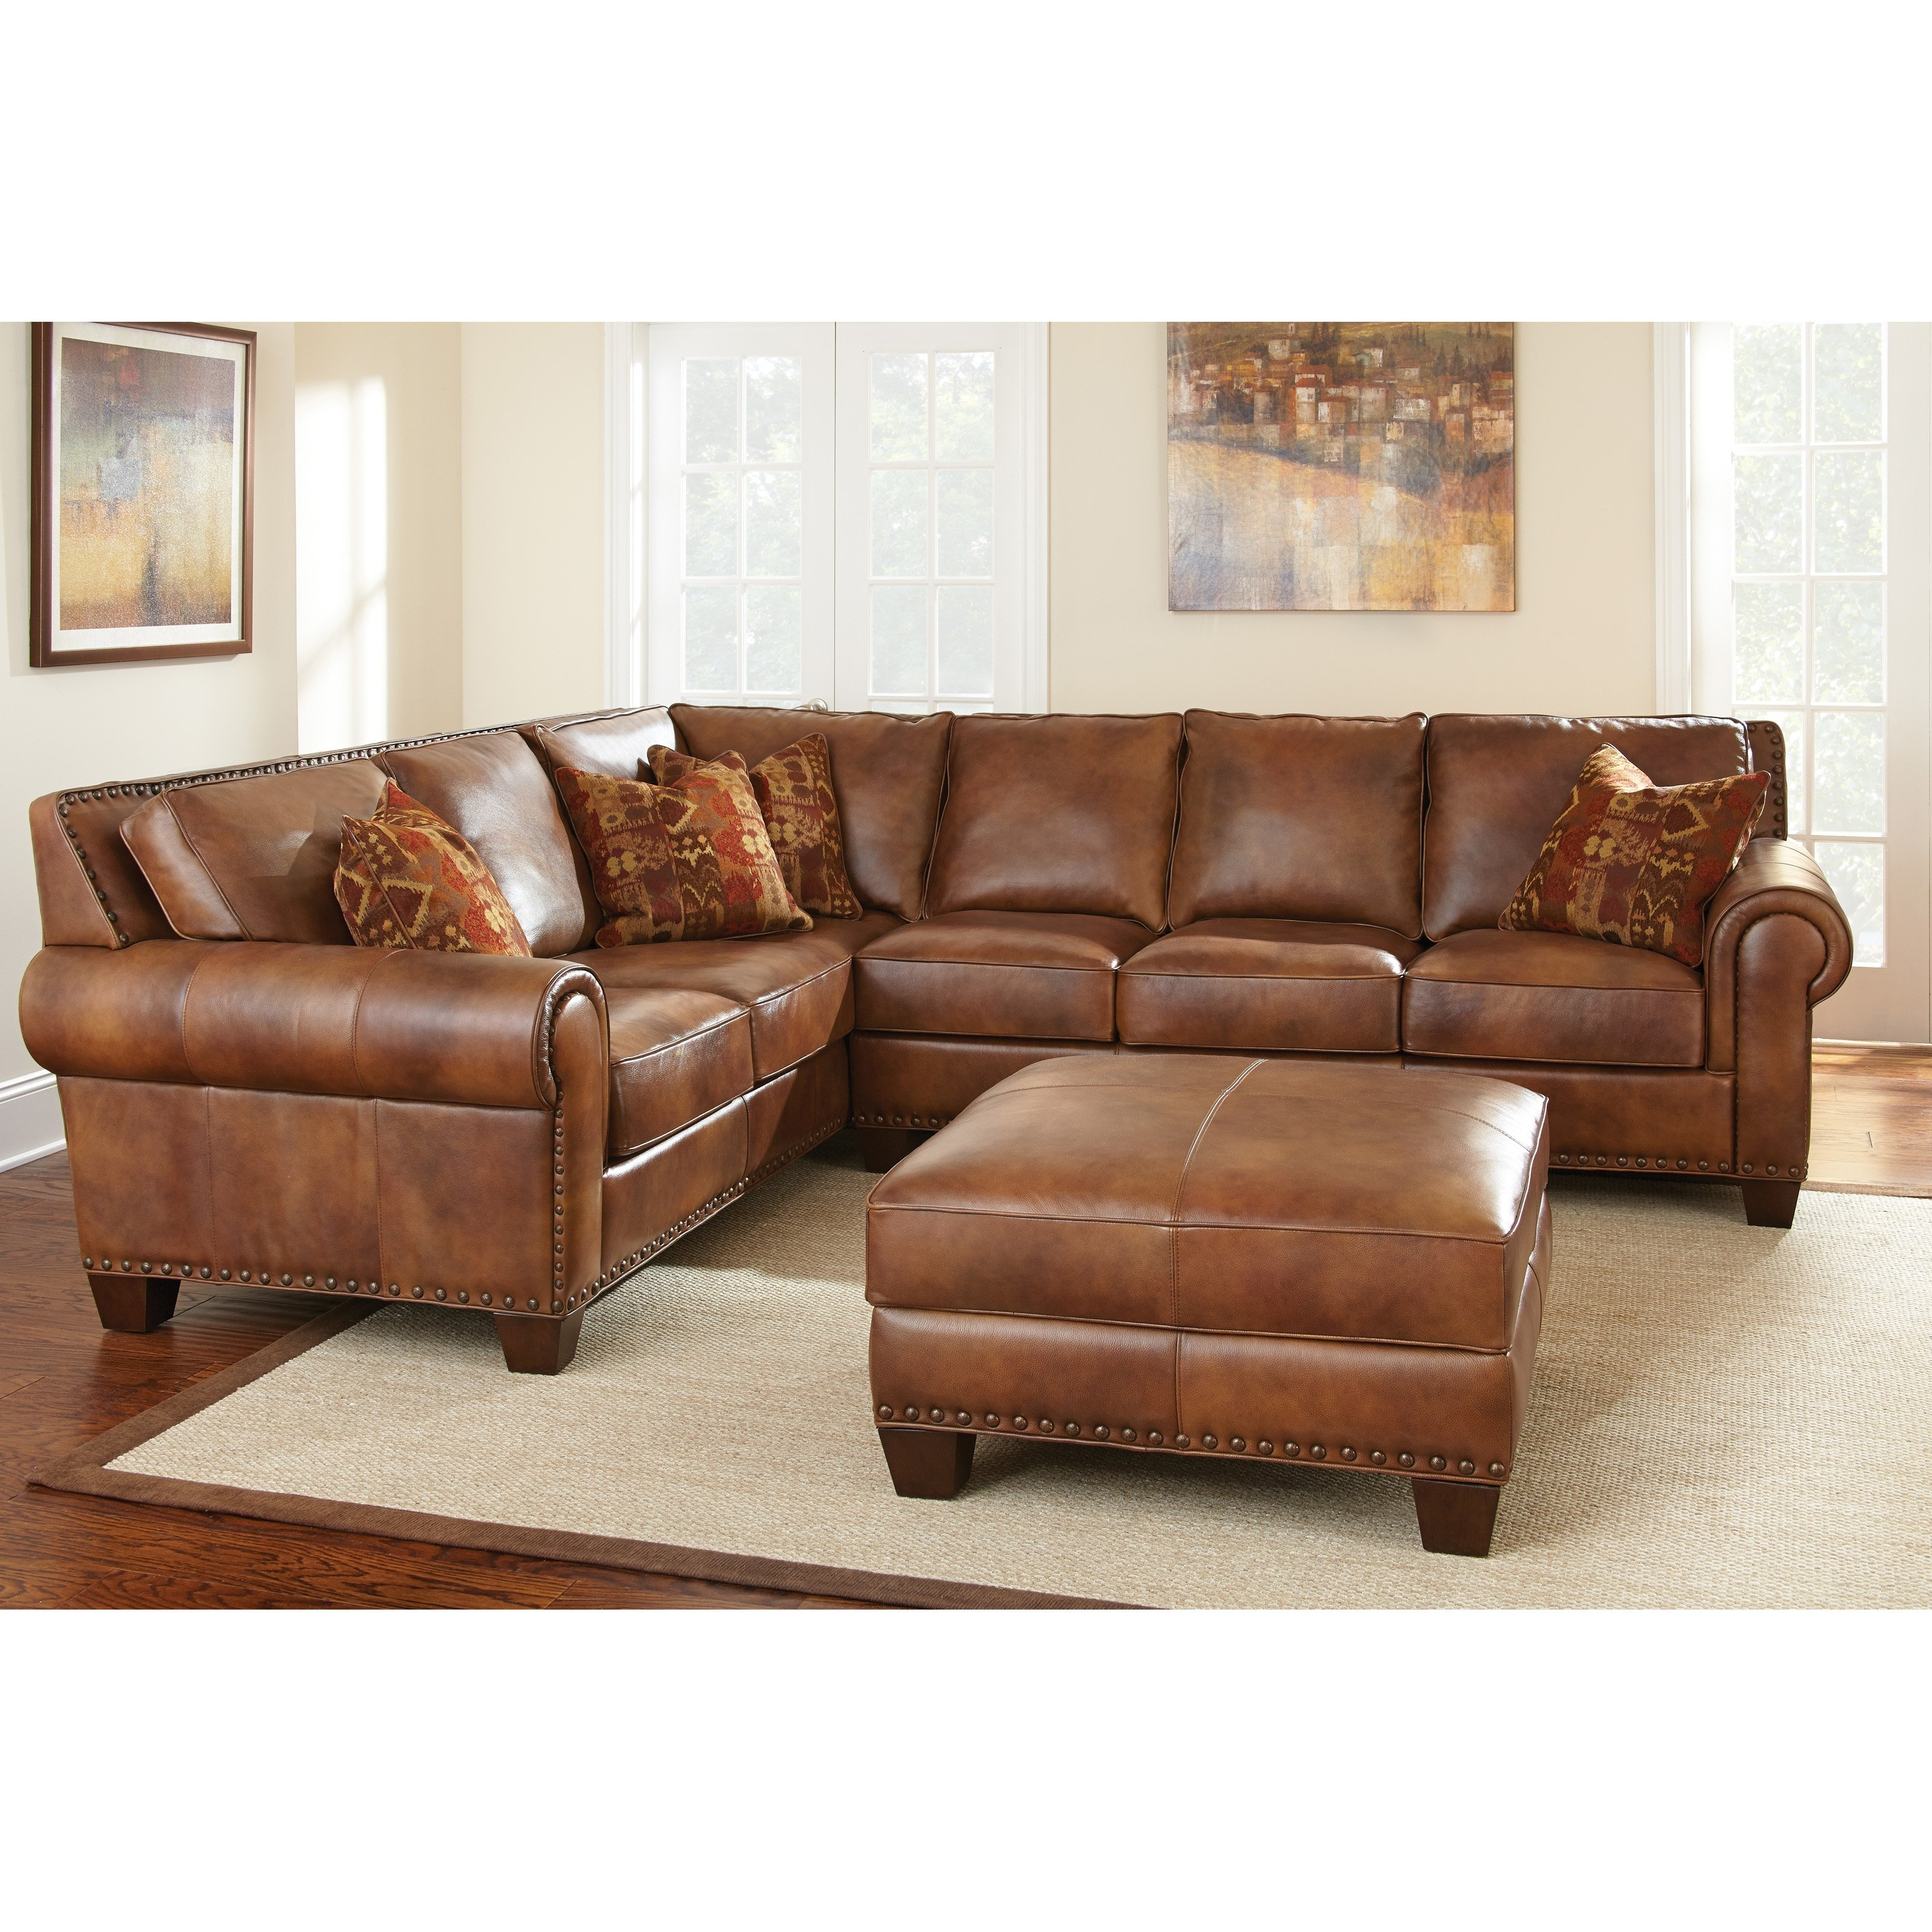 Ivan Smith Sectional Sofas With Well Known Have To Have It (View 8 of 20)